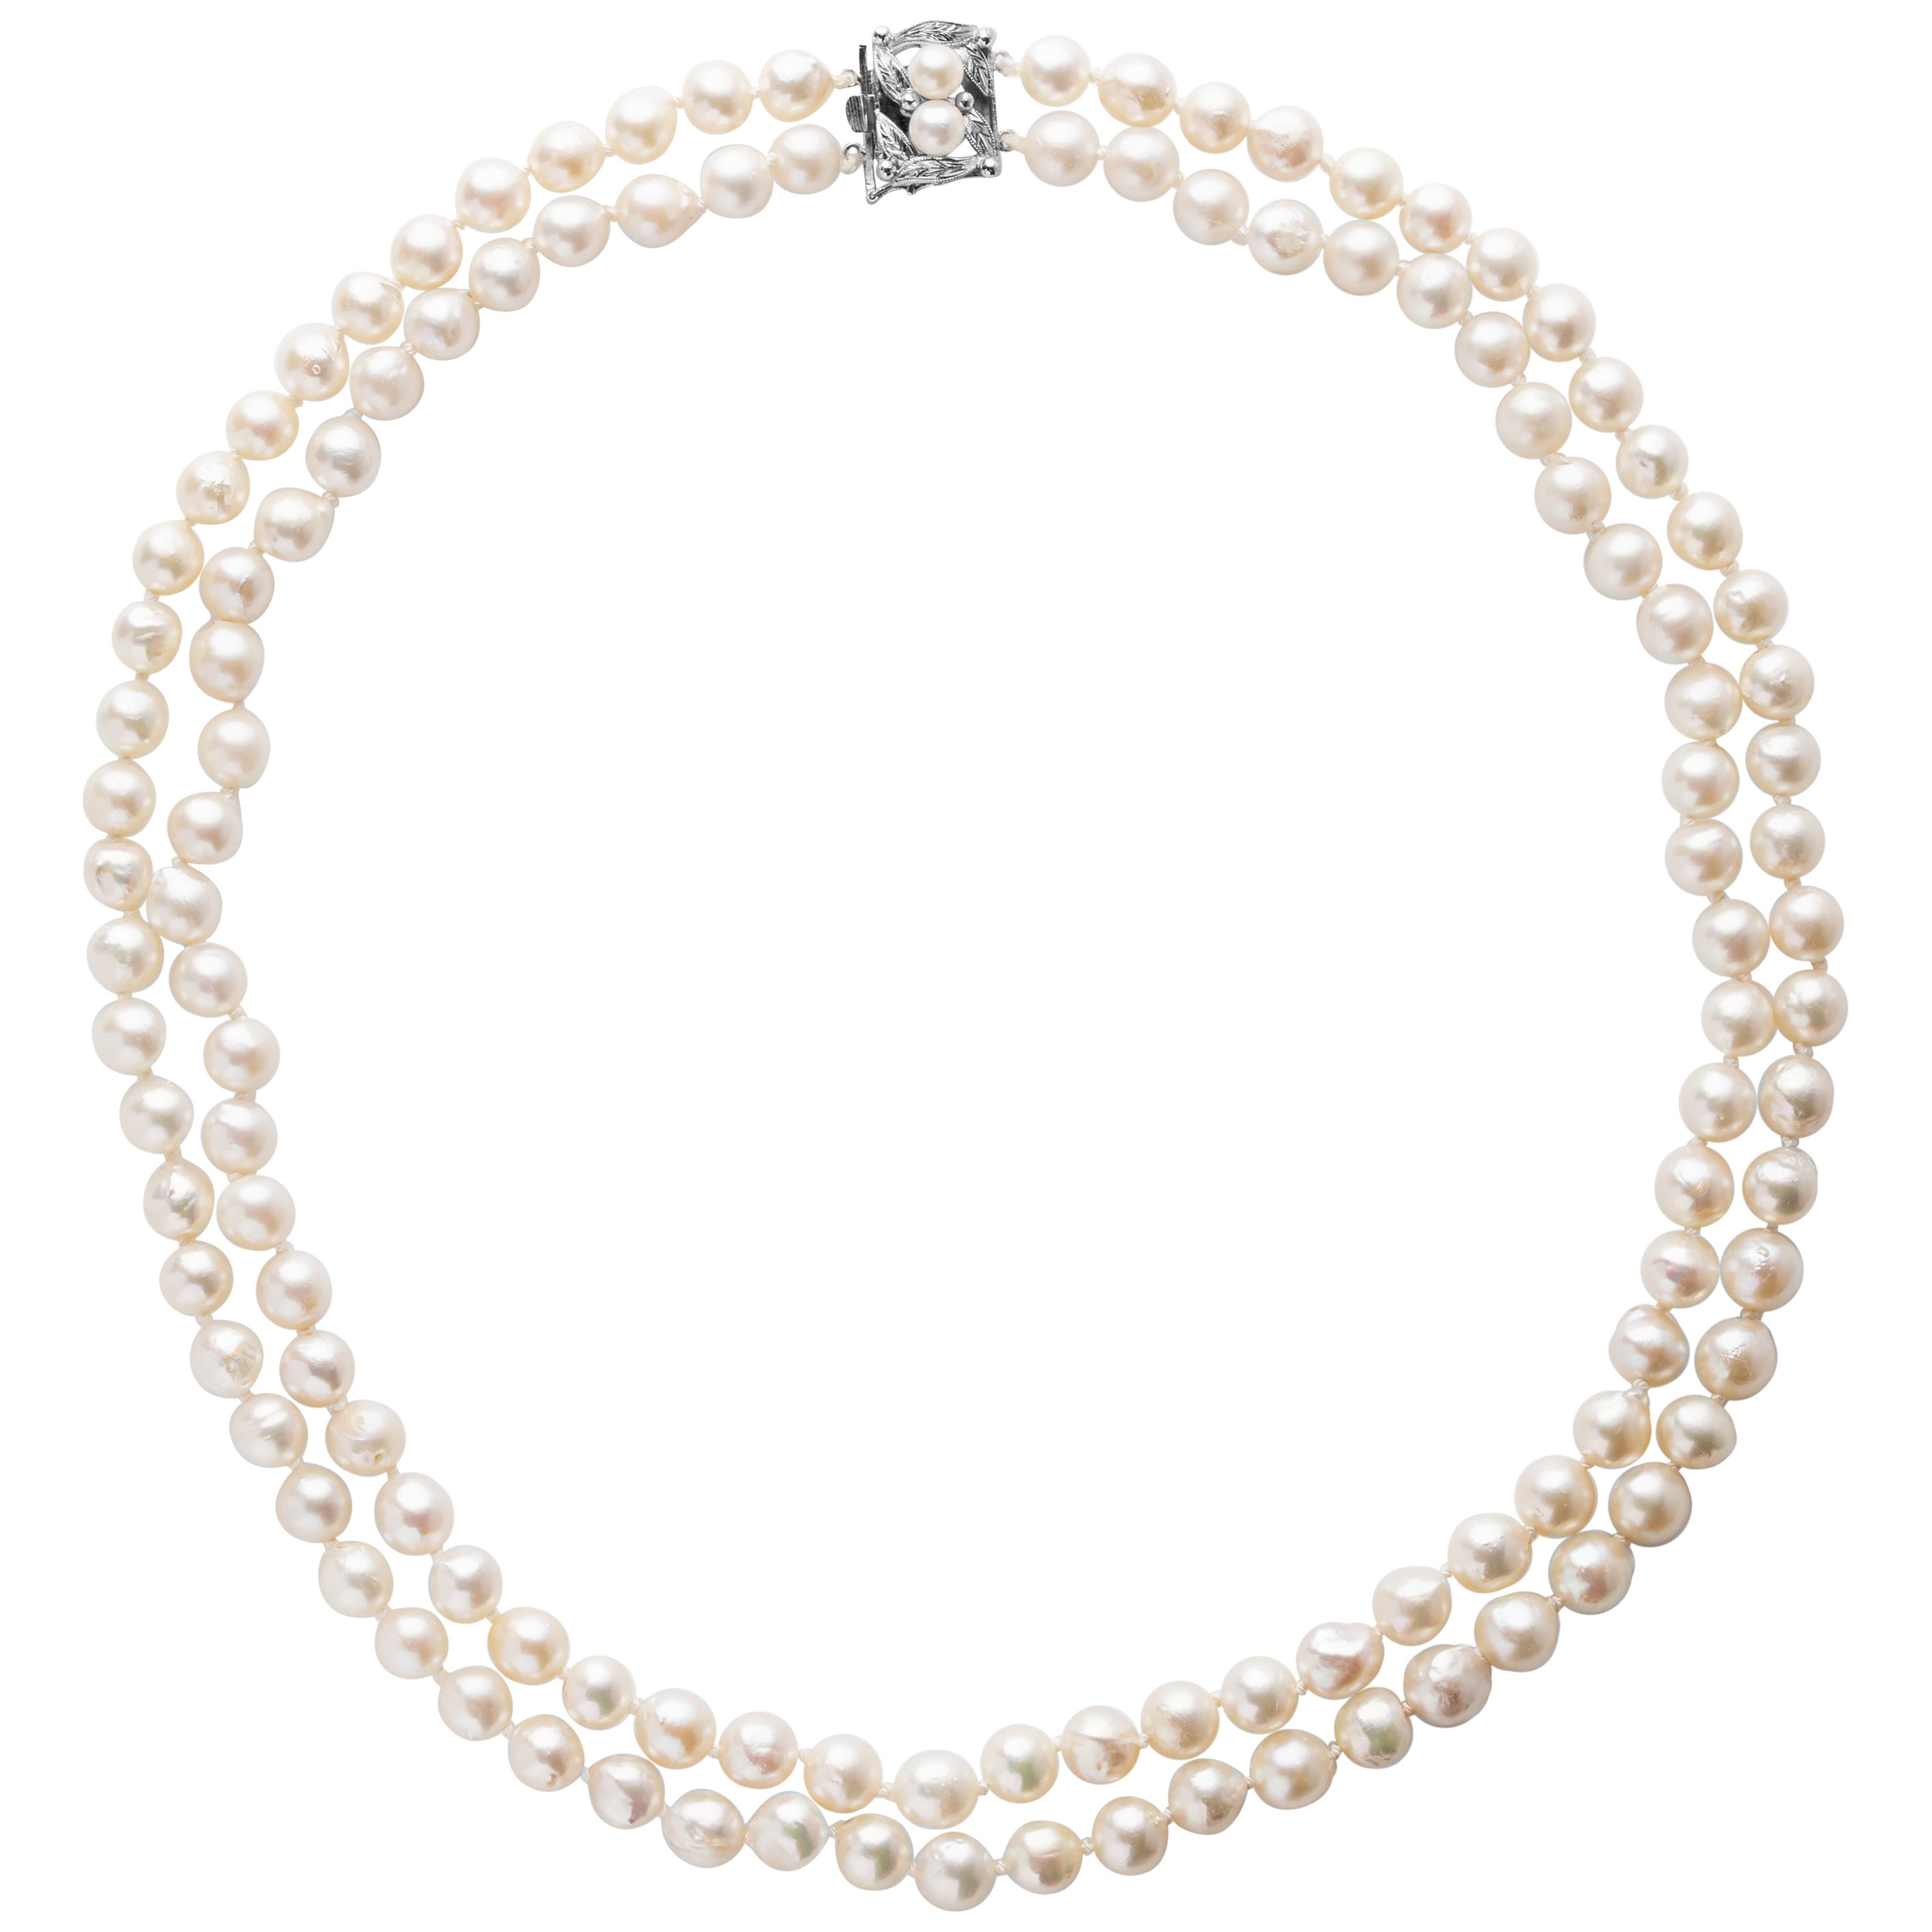 Akoya Pearl Necklace Double Strand, circa 1950s